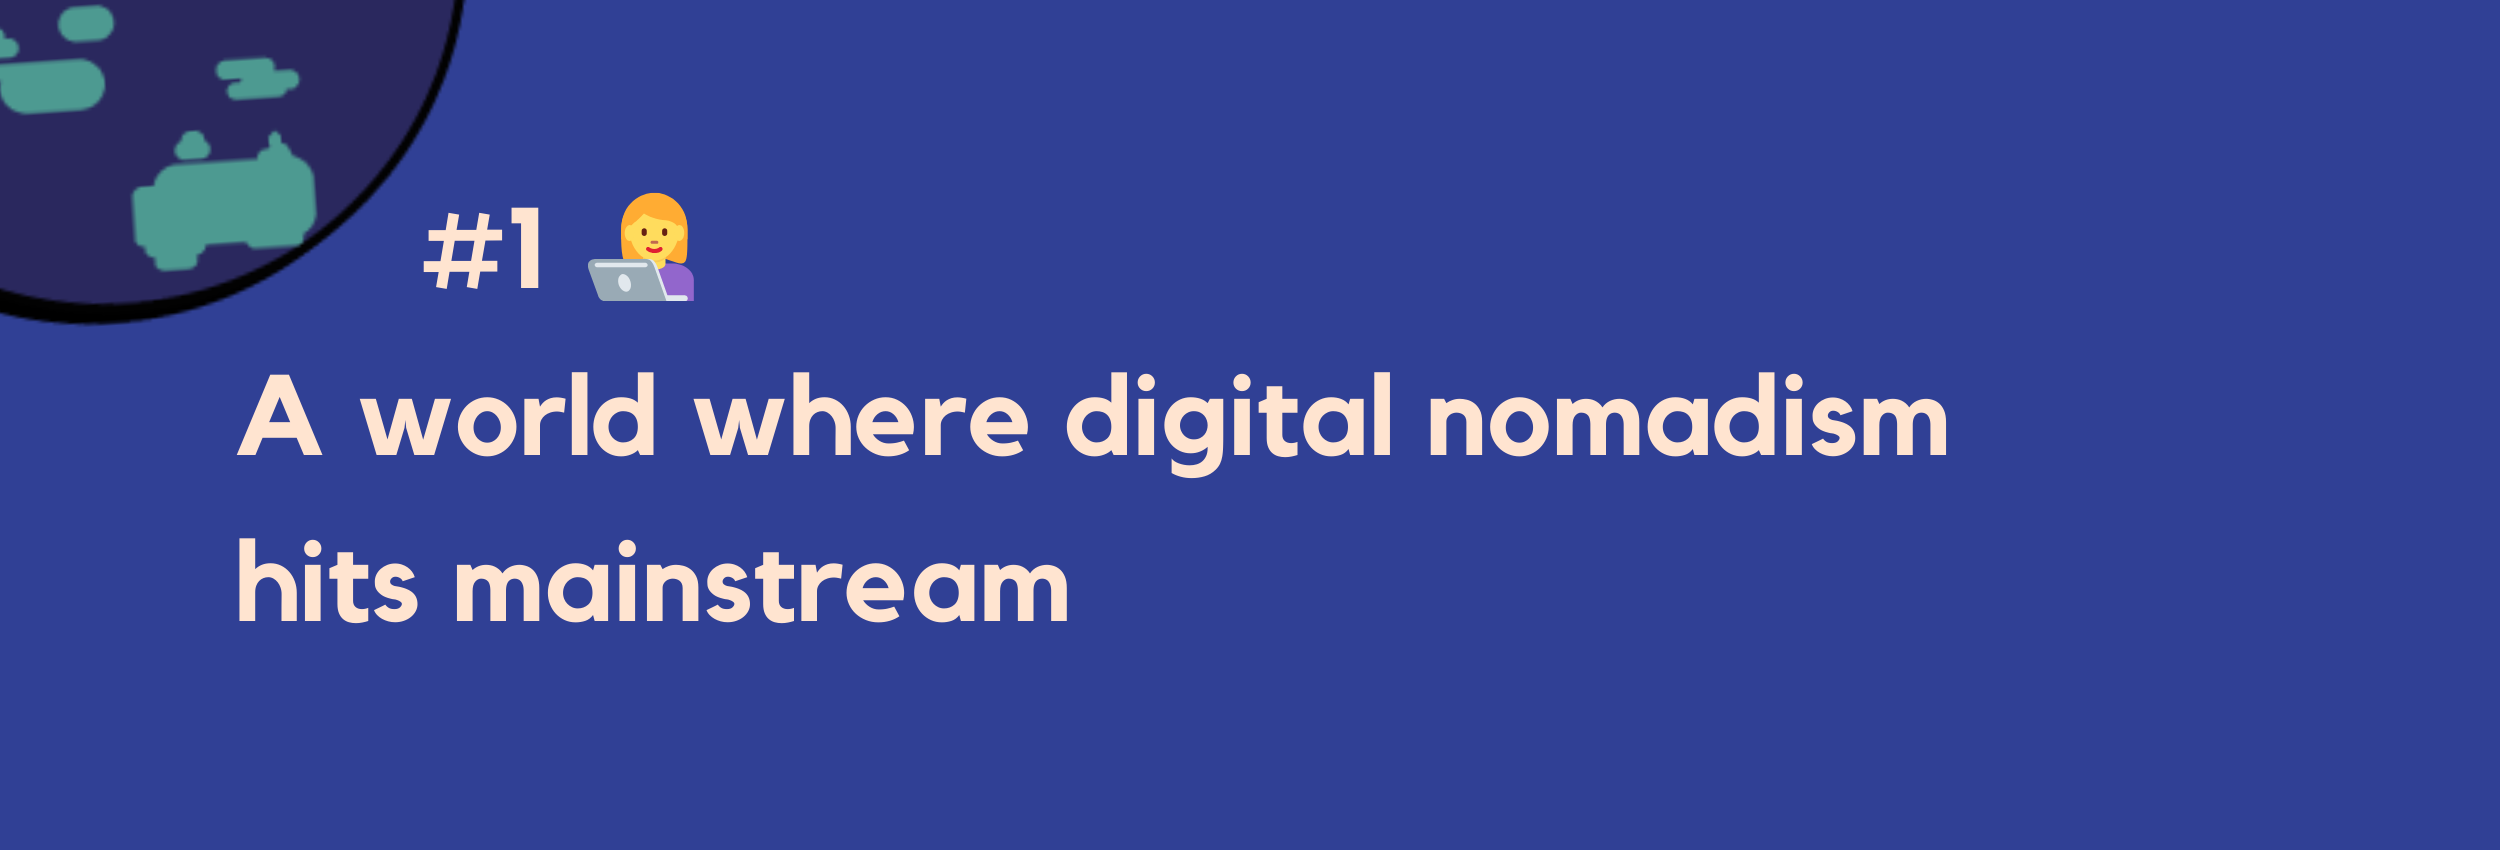 #1 — A world where digital nomadism hits mainstream